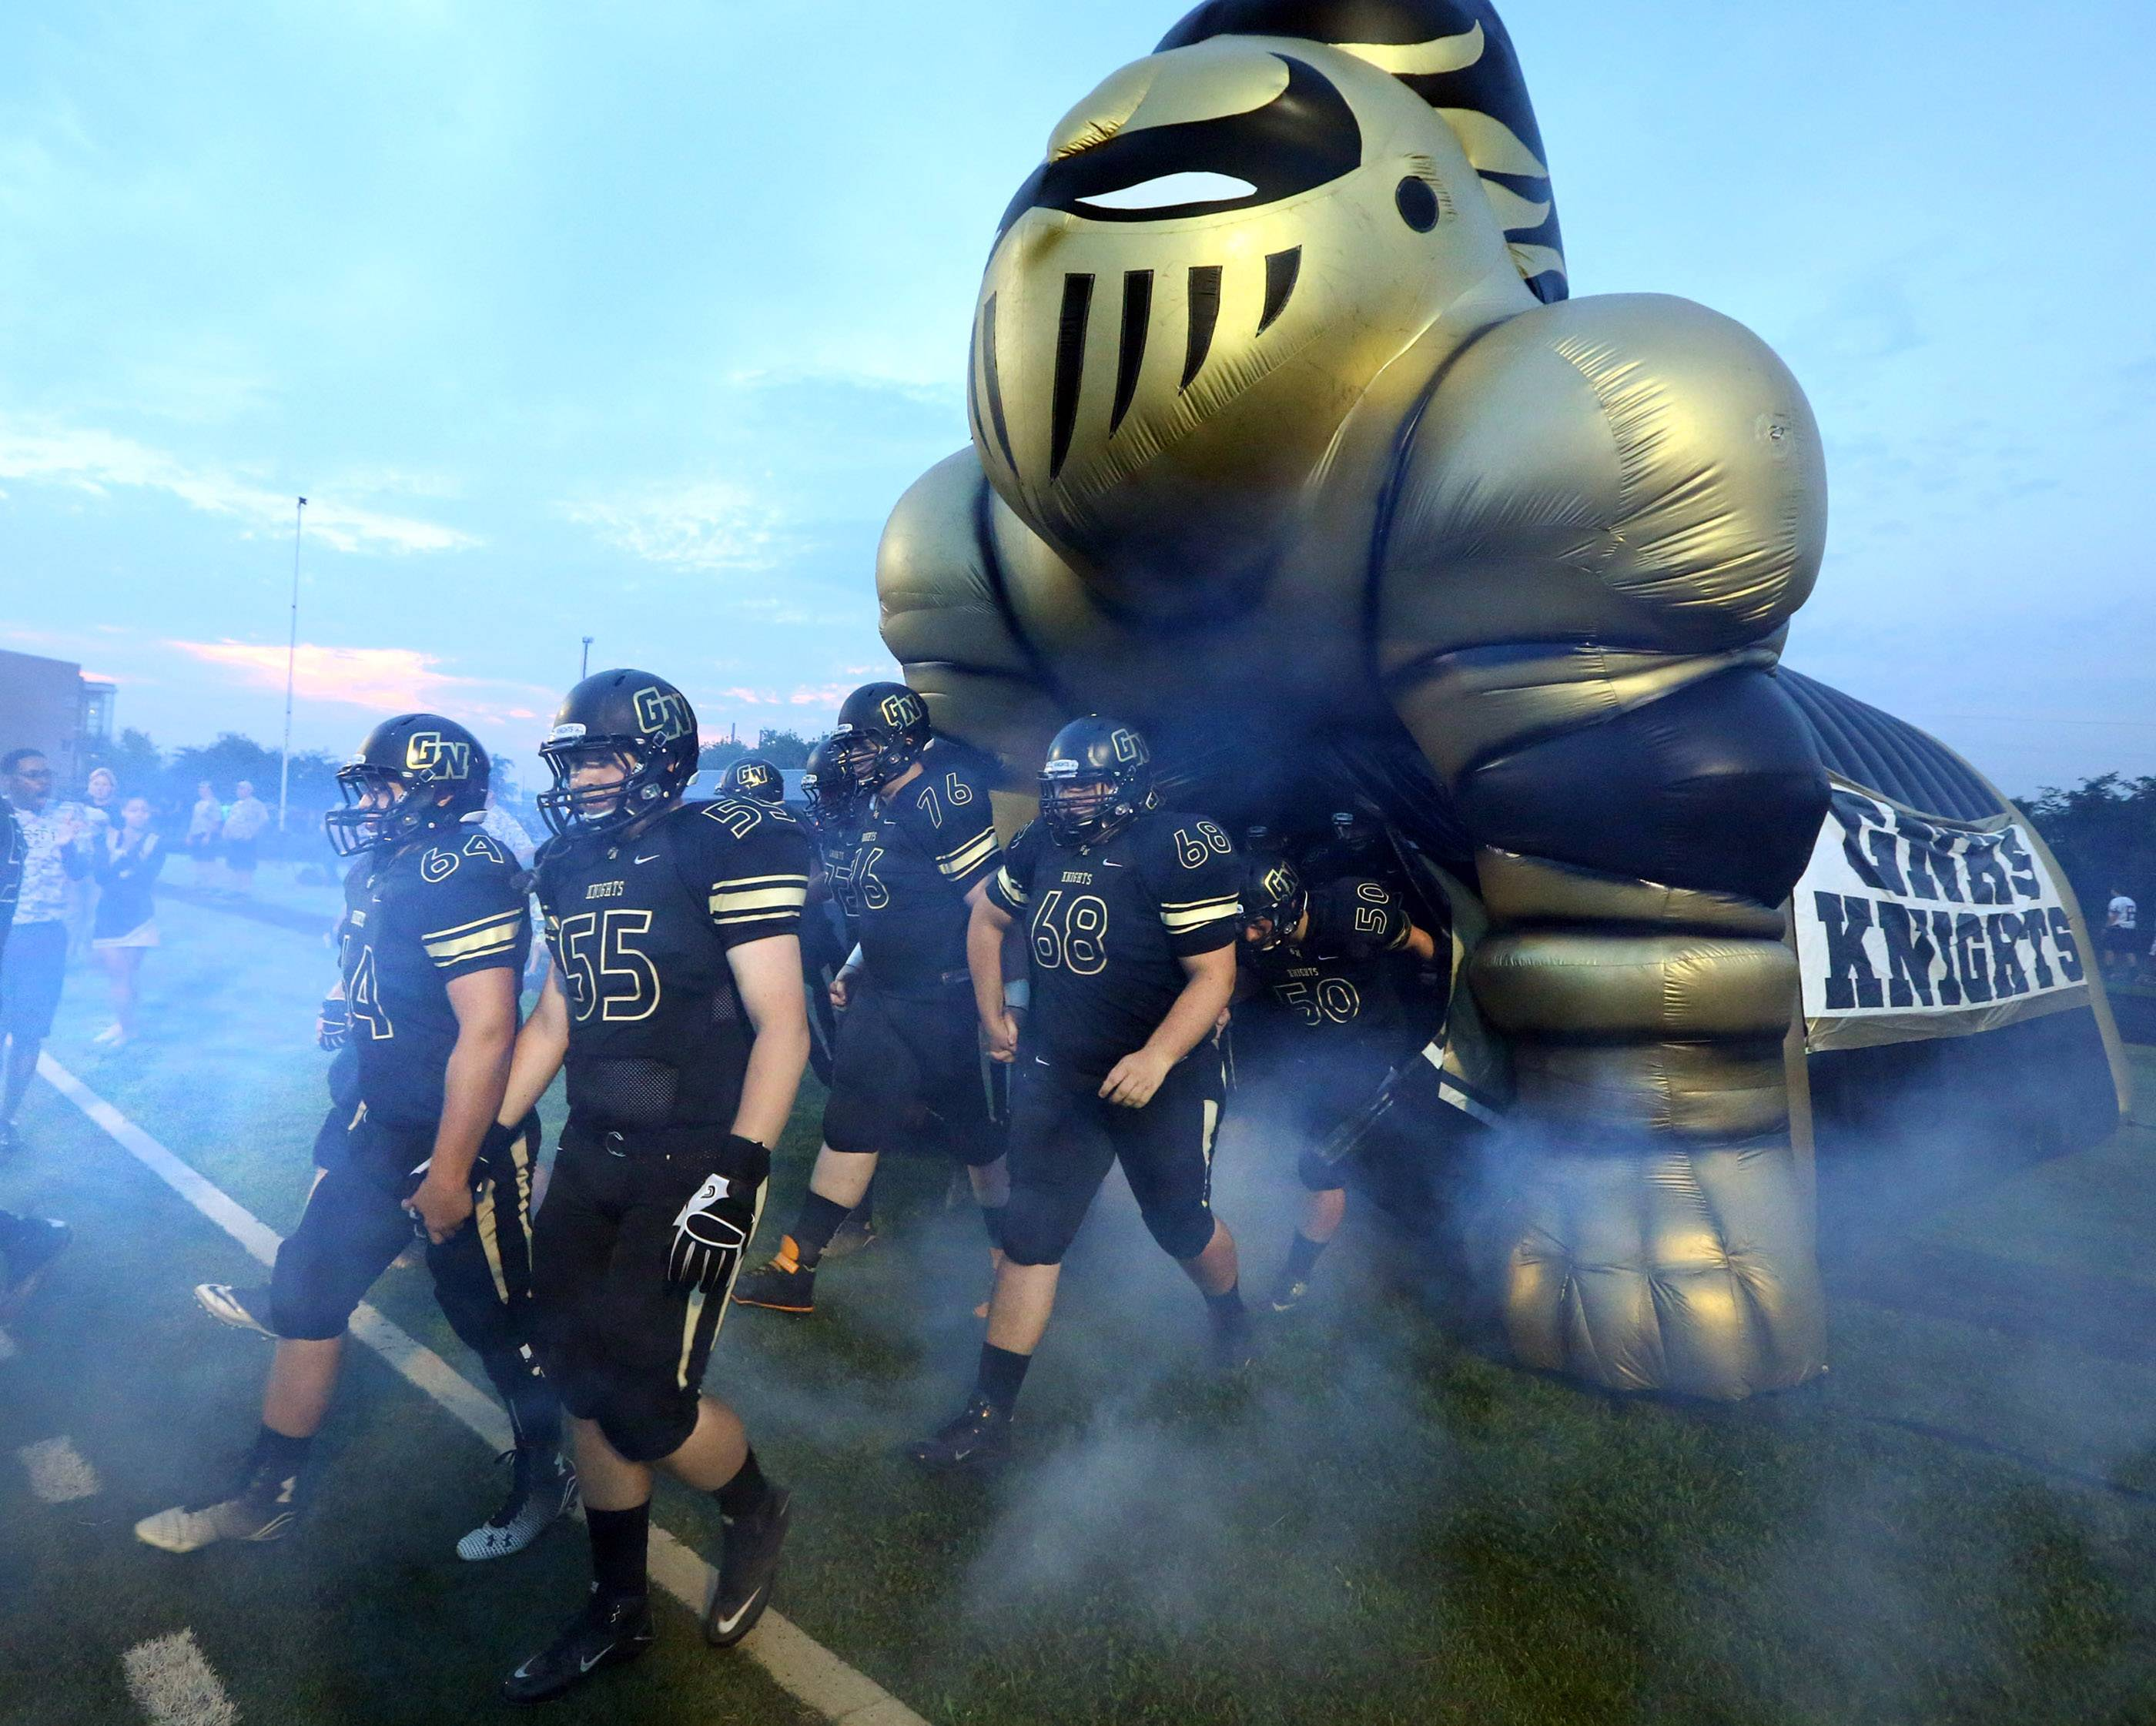 Grayslake North players take the field to play Lakes at Grayslake North on Friday.